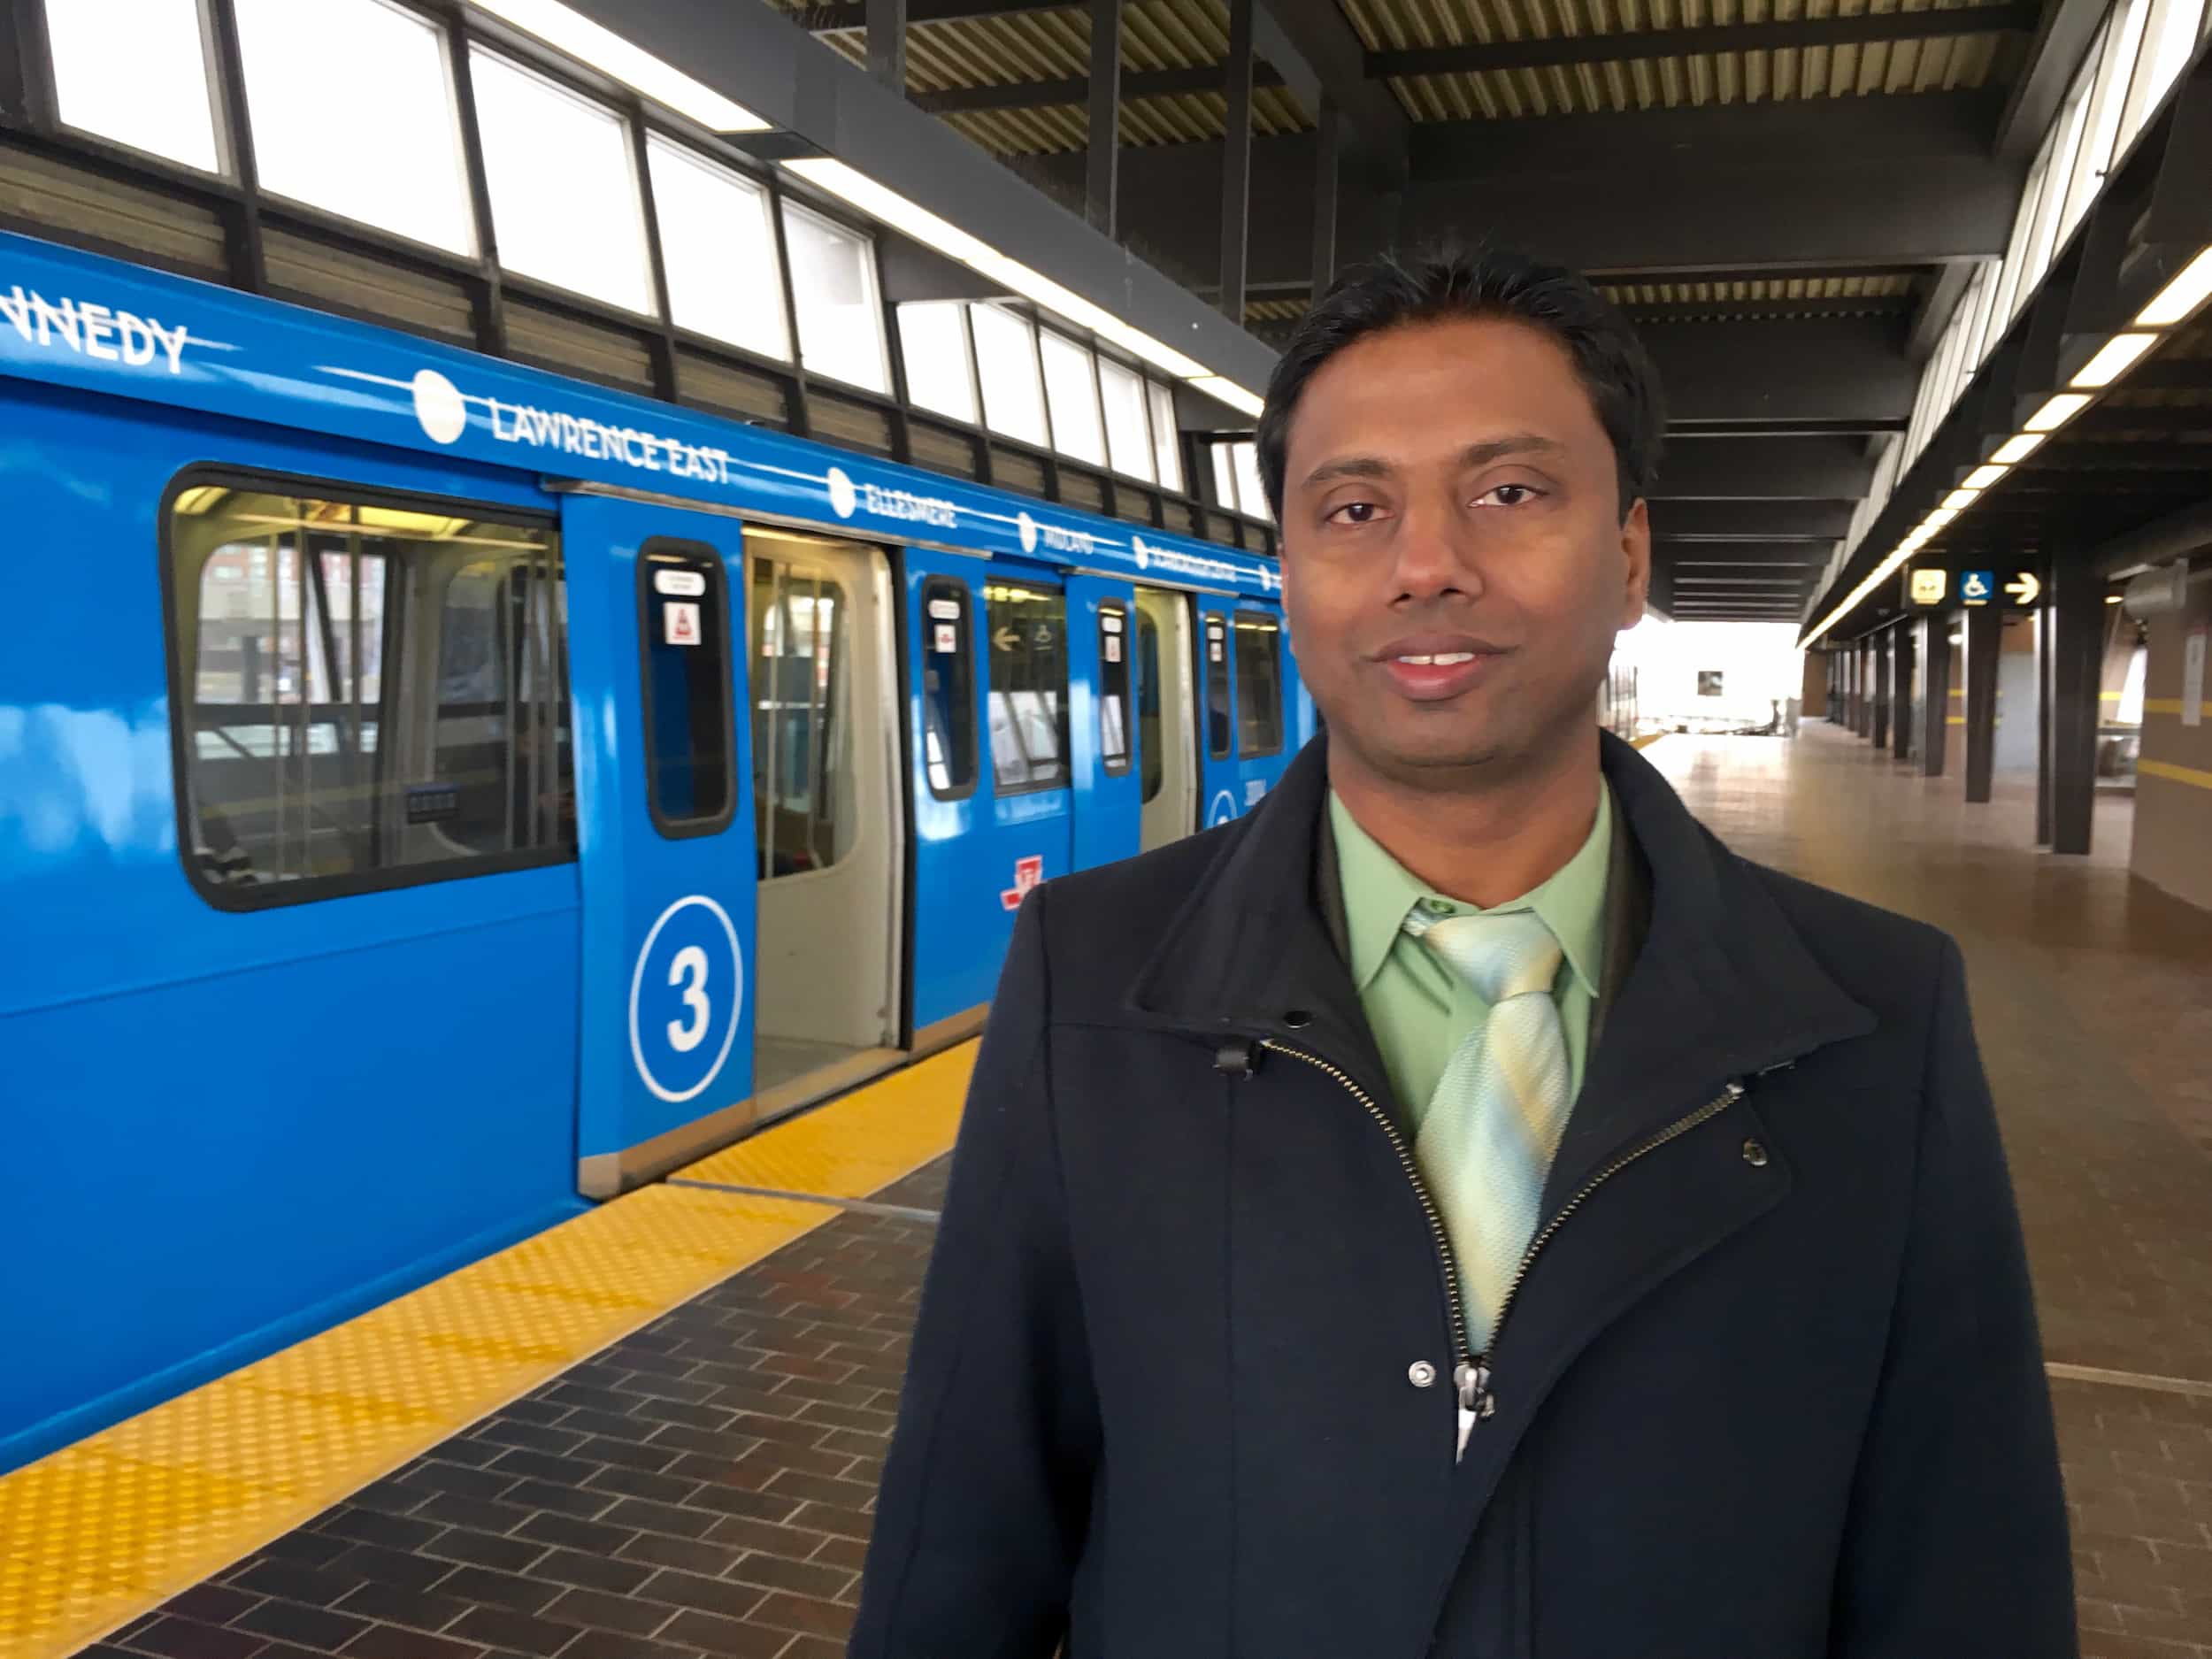 """10:48 a.m. Feb. 28, 2017. """"People in Scarborough support the subway, but the advocacy voice isn't there because these people have to work many jobs,"""" Councillor Neethan Shan told Signal Toronto at Kennedy station following an announcement about the latest report on the Scarborough subway. """"[The reason] you don't see [support] is people who would be positively impacted [by the Scarborough subway] coming out and speaking at these town halls and forums is because they don't have the time, the resources and means to. That's why people of colour, people of racialized voices, people of low income communities – it's important to be heard, because this subway is going to be an economic boost for many of us in those communities."""""""